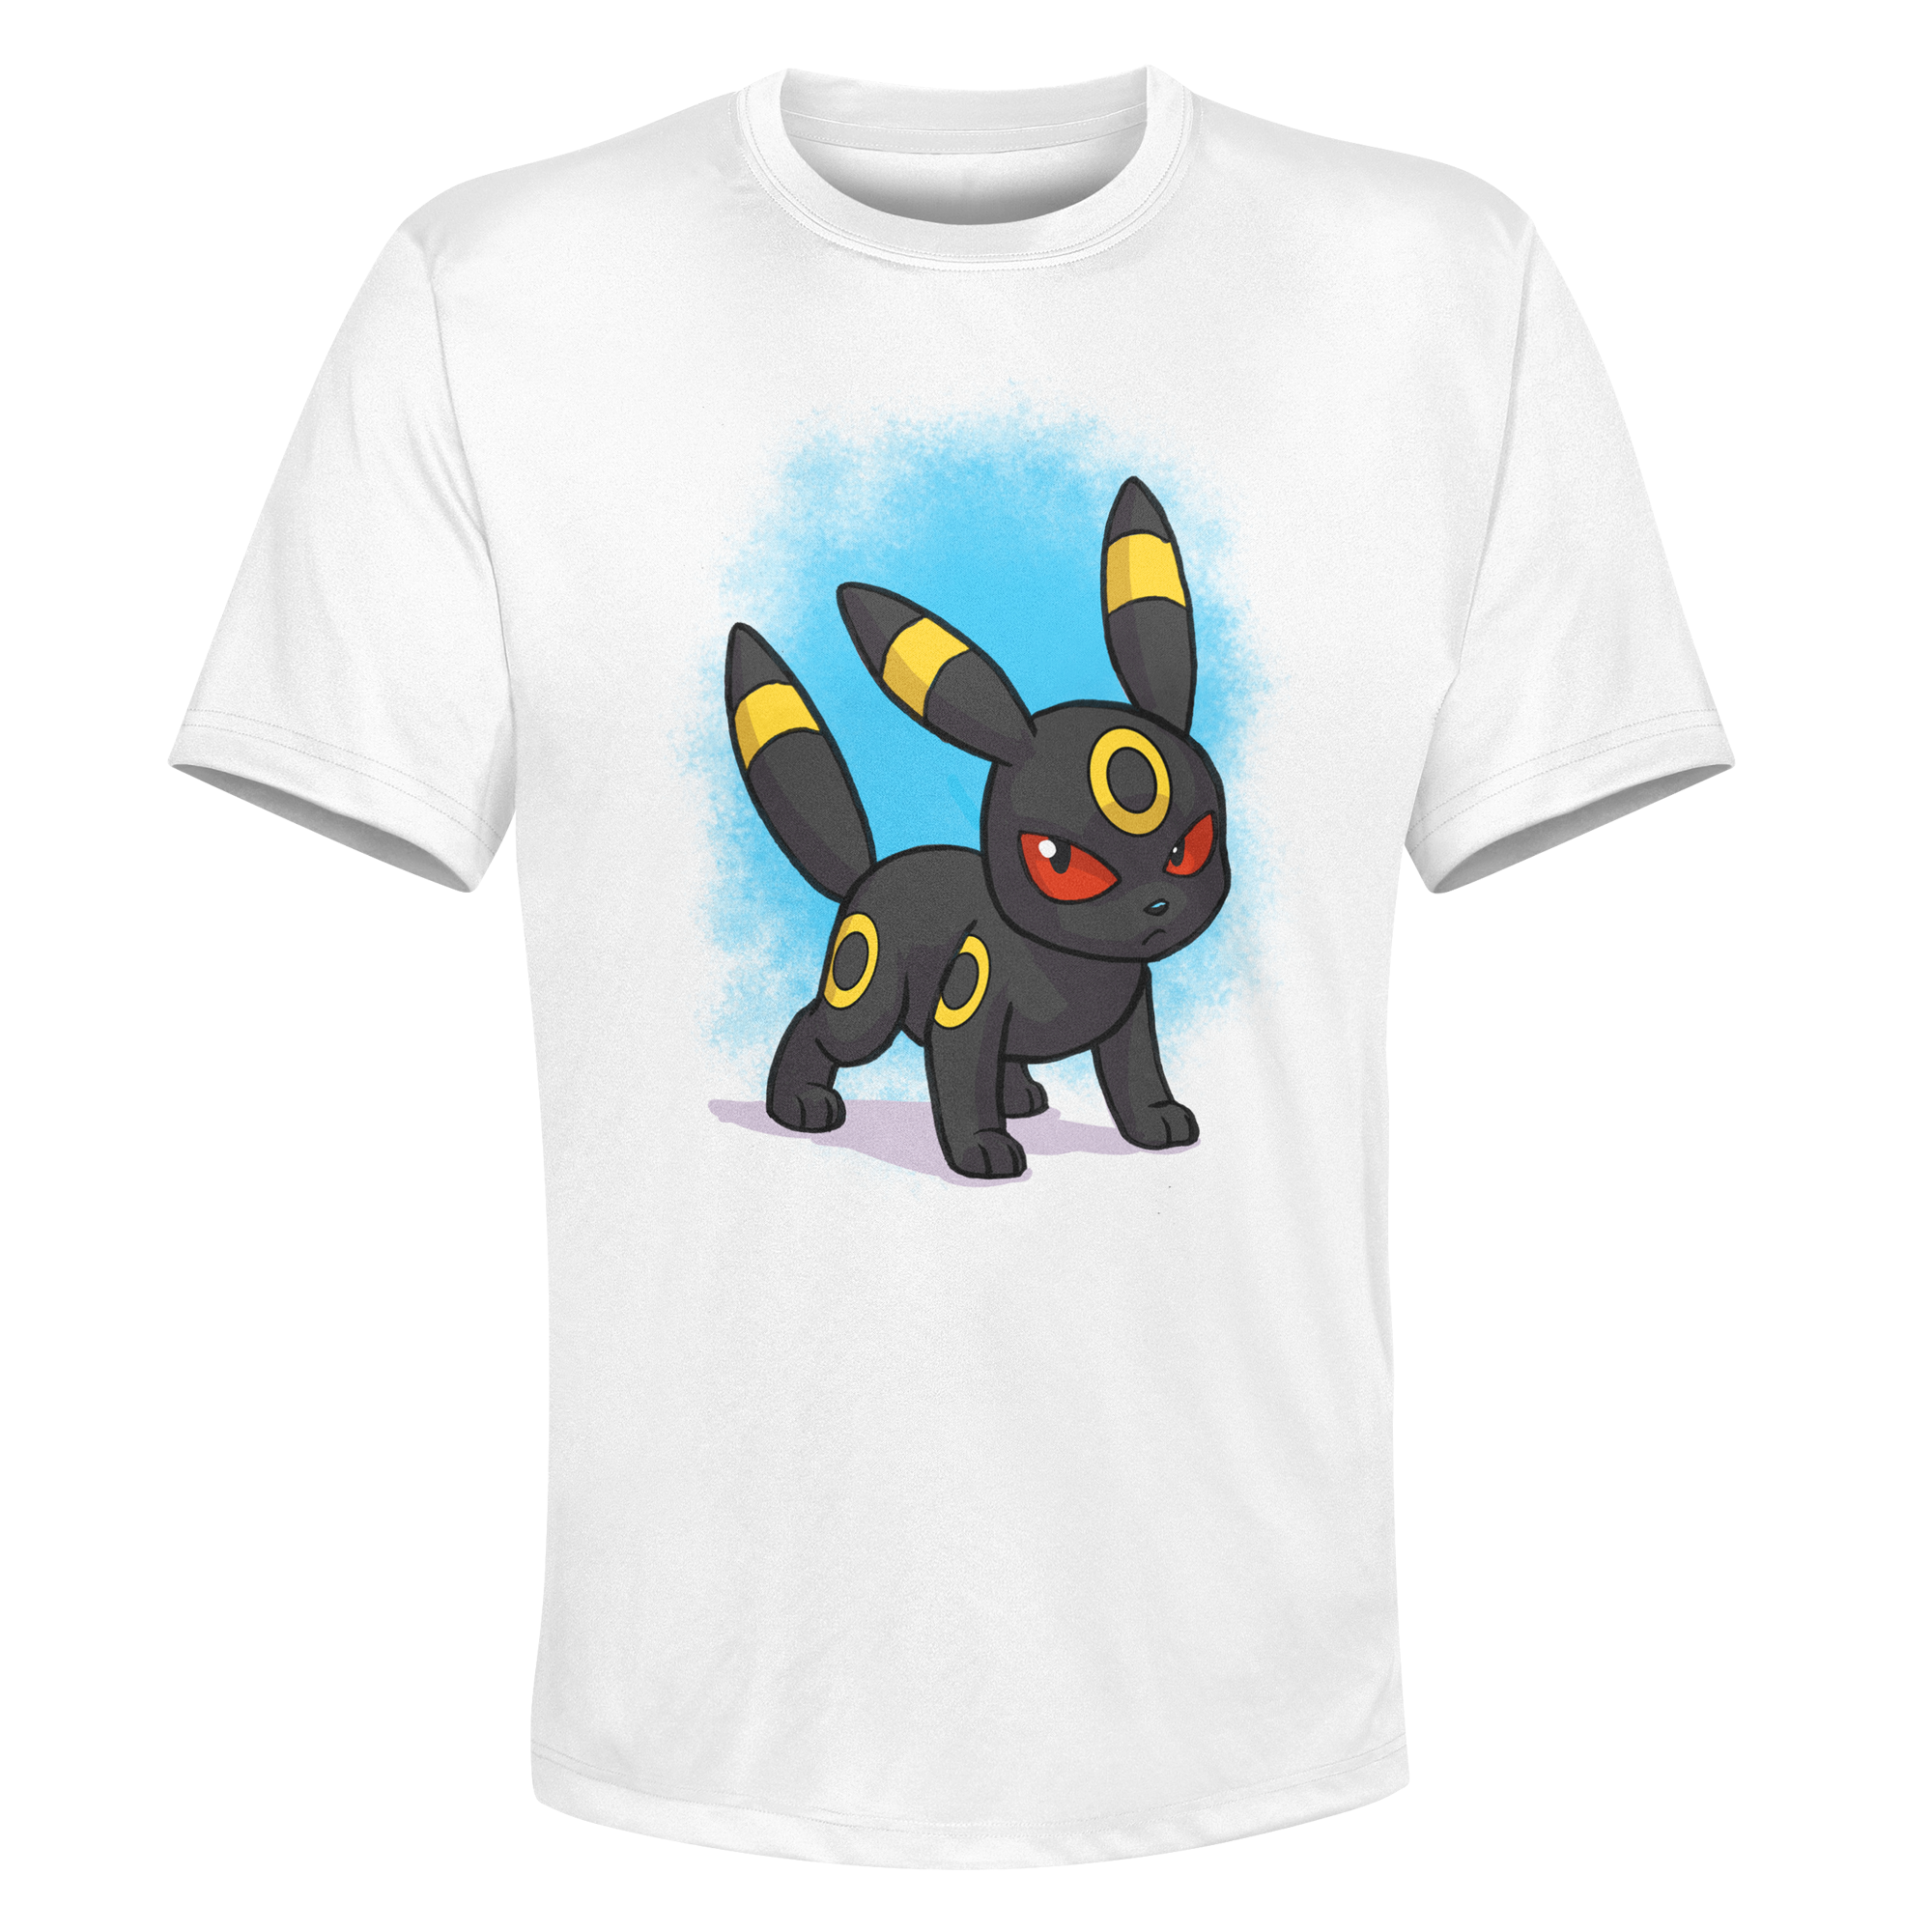 Umbreon - White Performance Graphic Tee